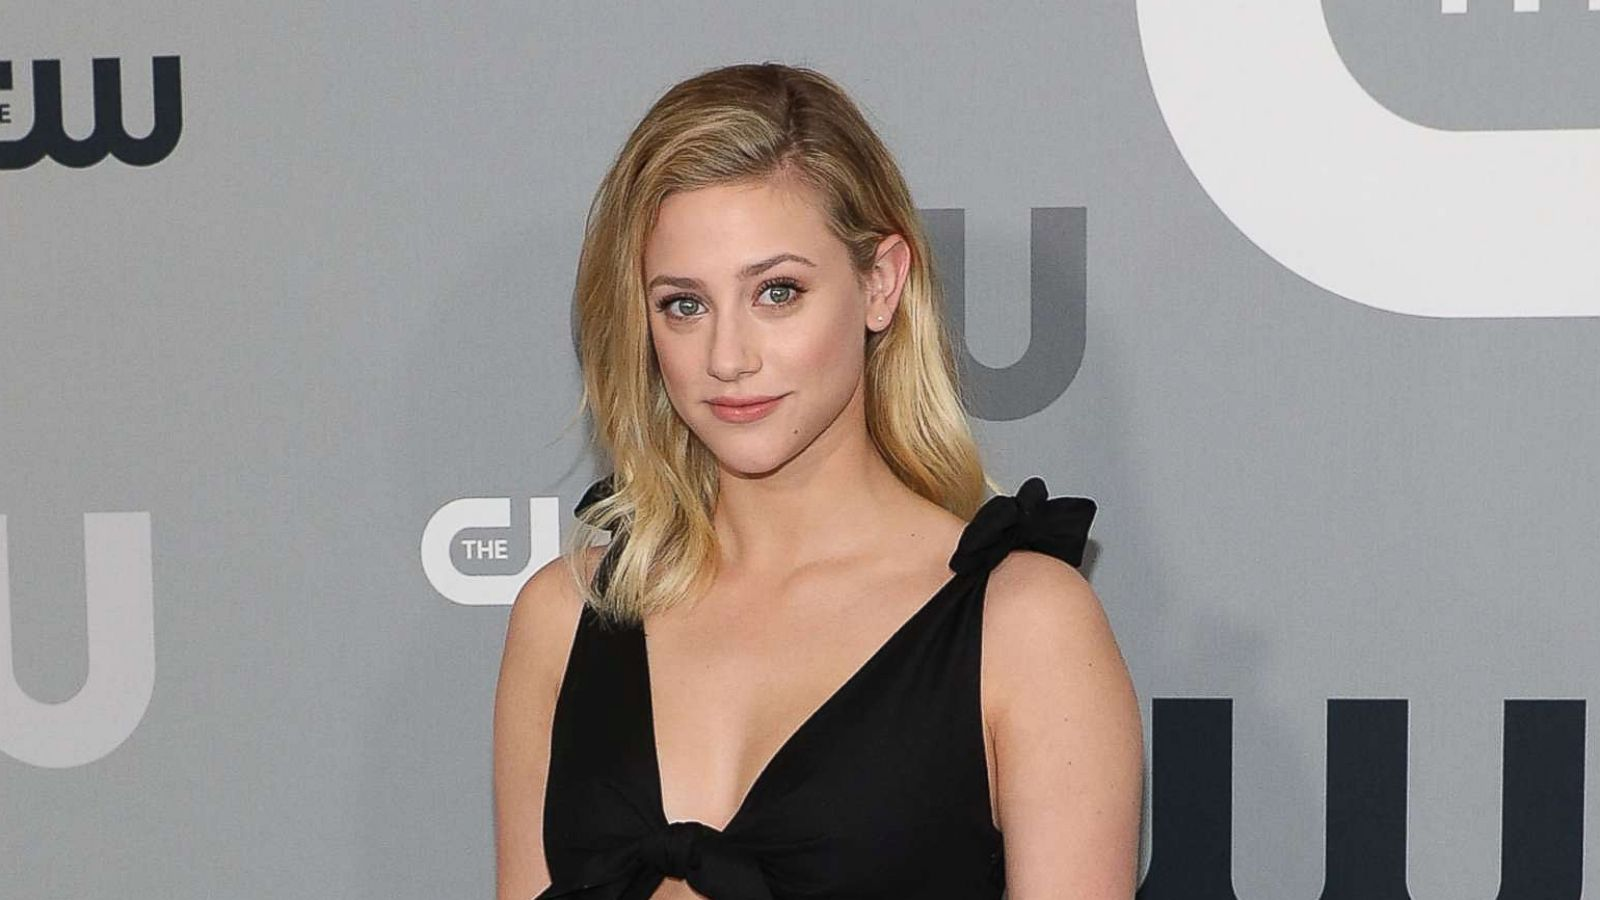 Riverdale Actress Lili Reinhart Fires Back At Body Shamers